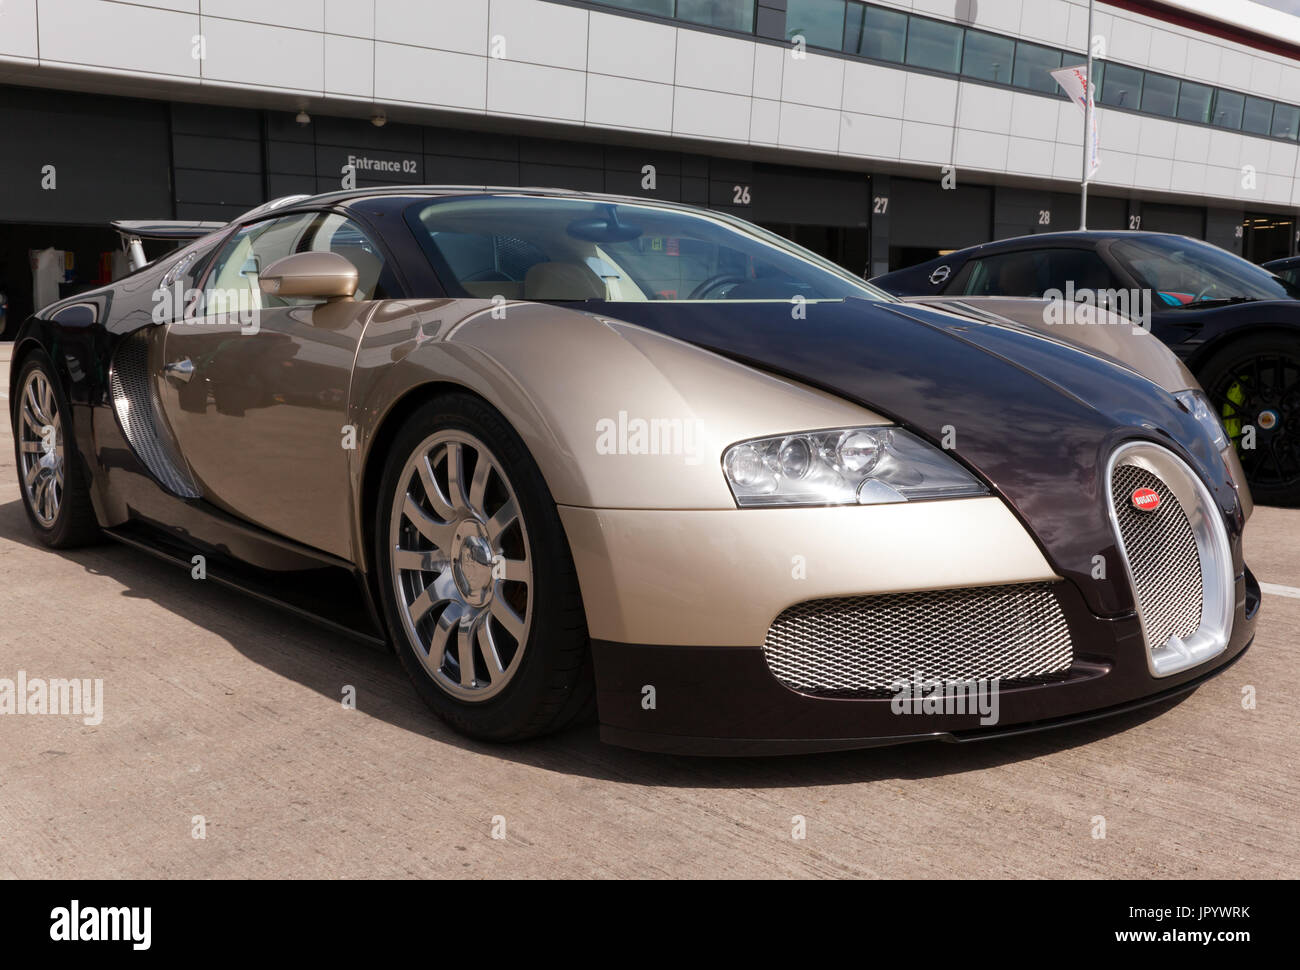 Three-quarter view of a 2007 Bugatti Veyron EB 16.4 on static display in the International Paddock at the 2017 Silverstone Classic - Stock Image